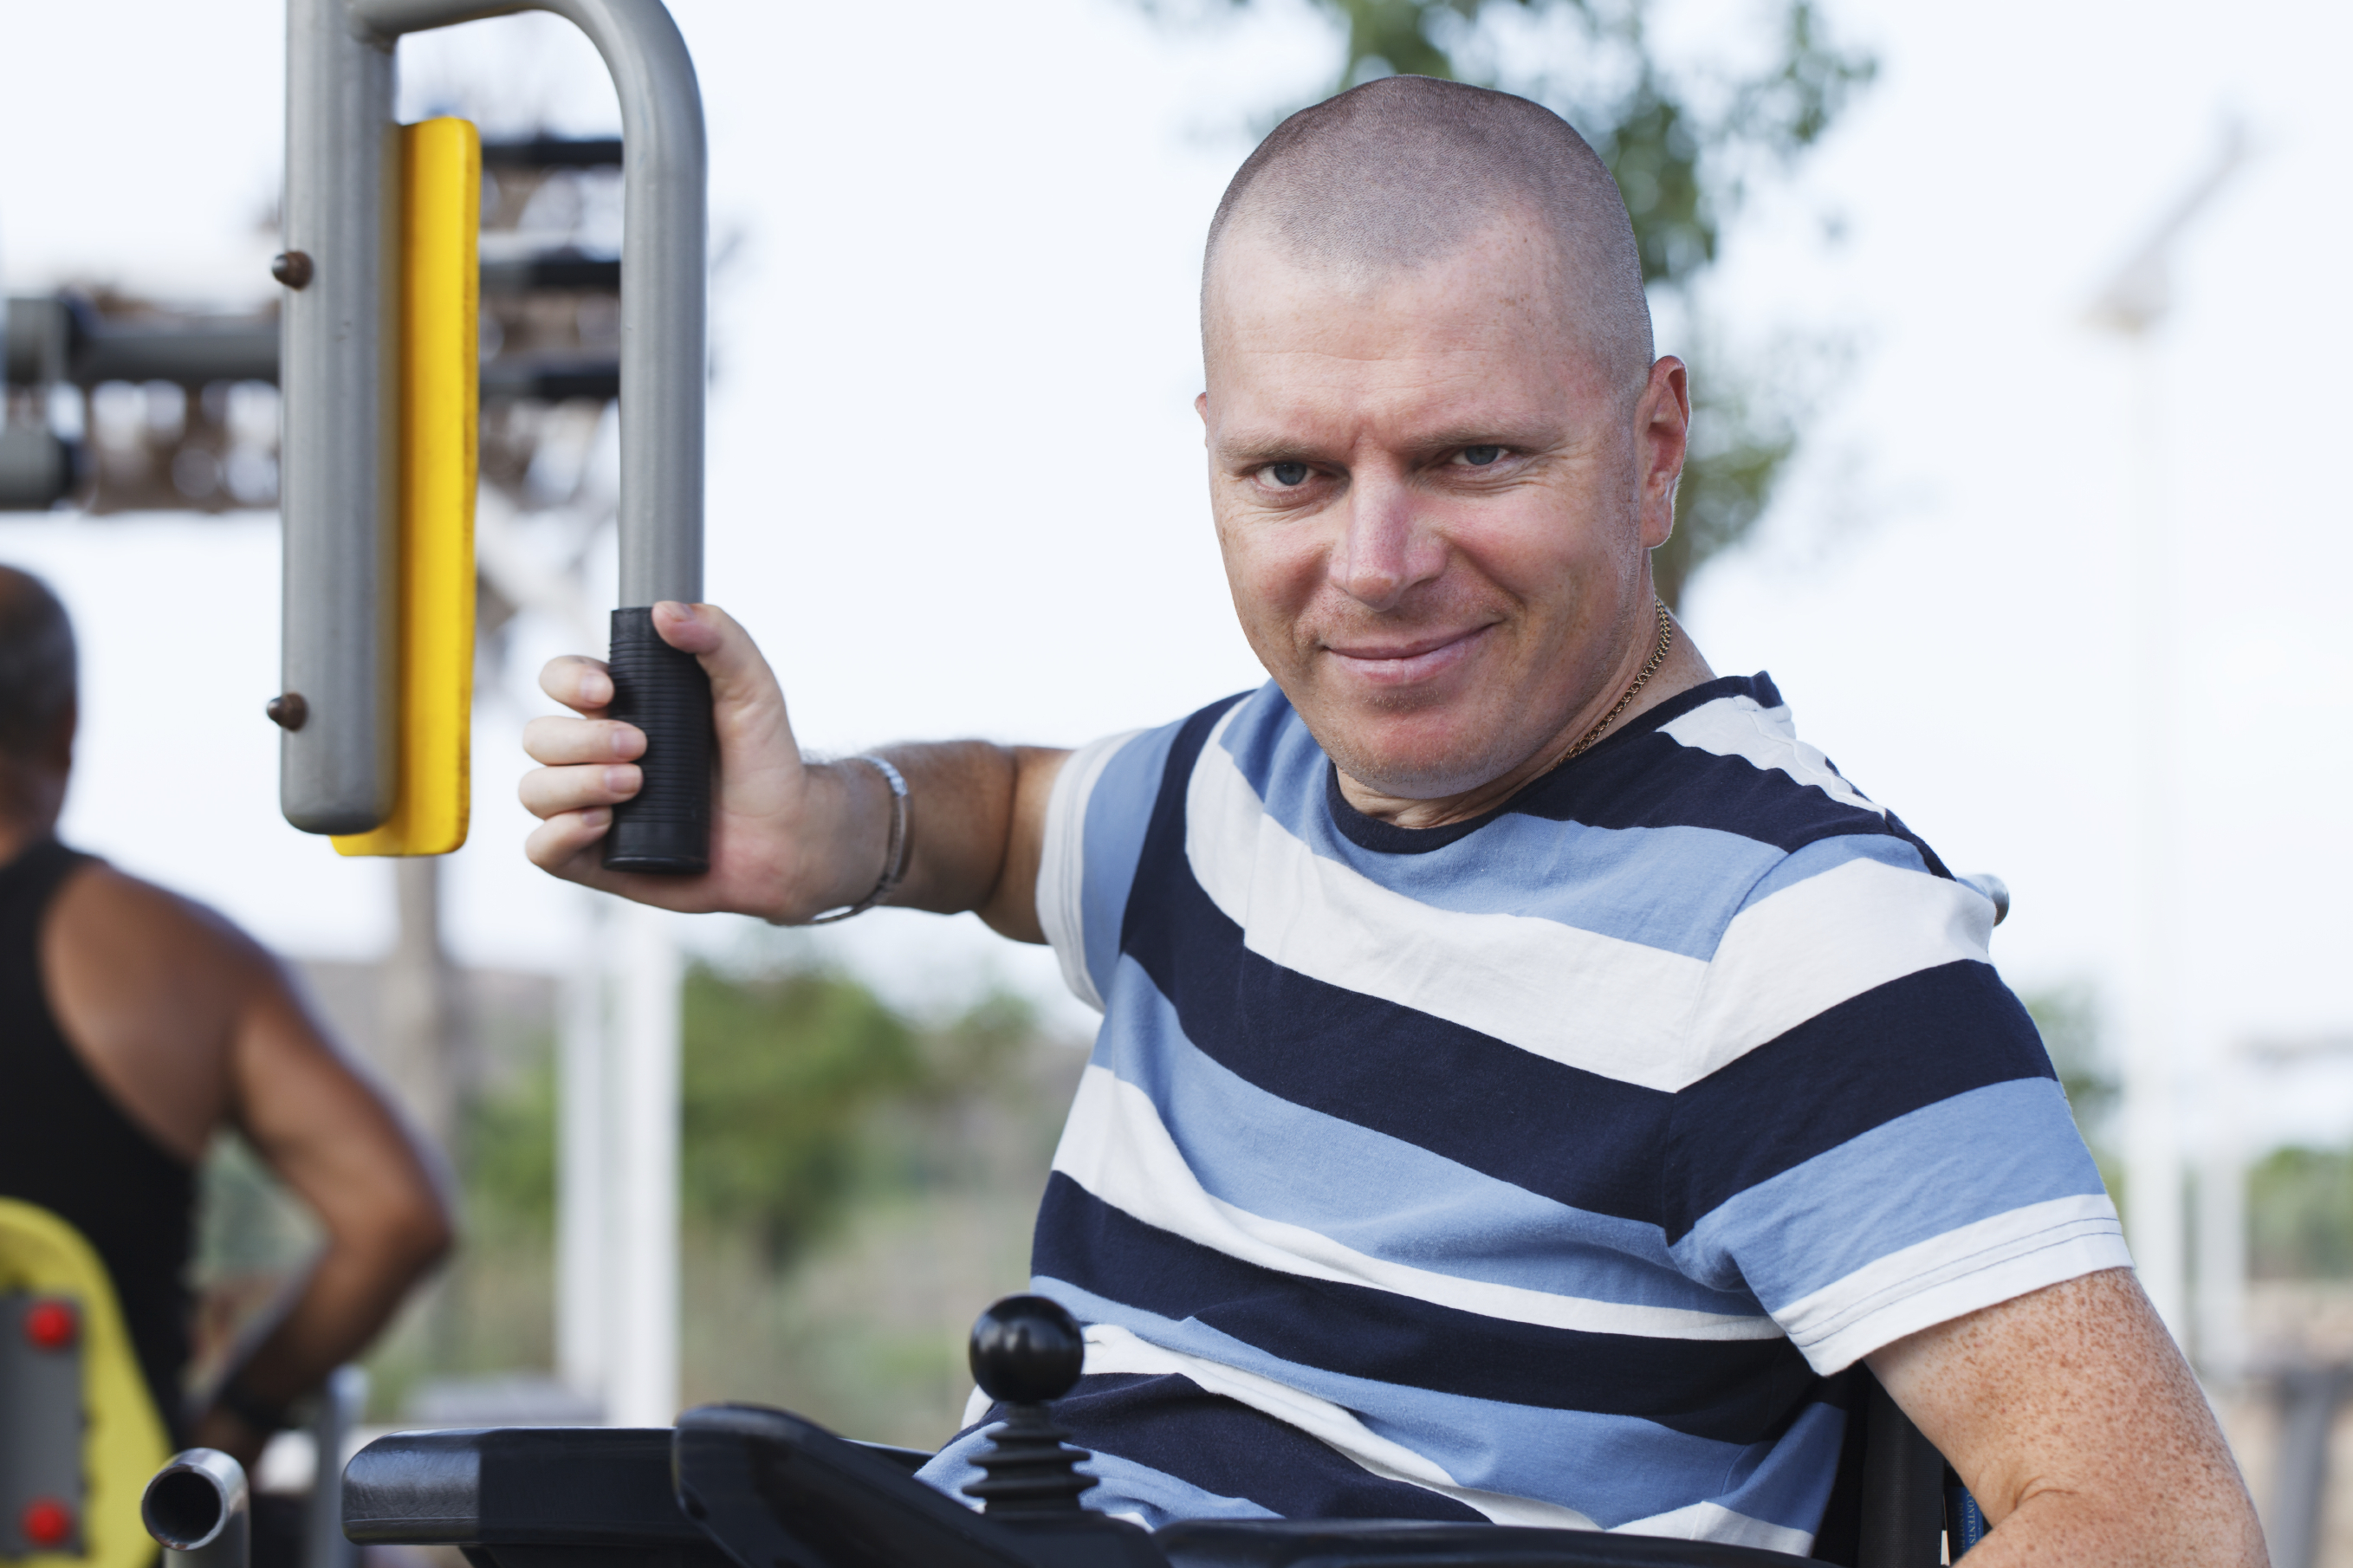 man in striped shirt using an exercise machine